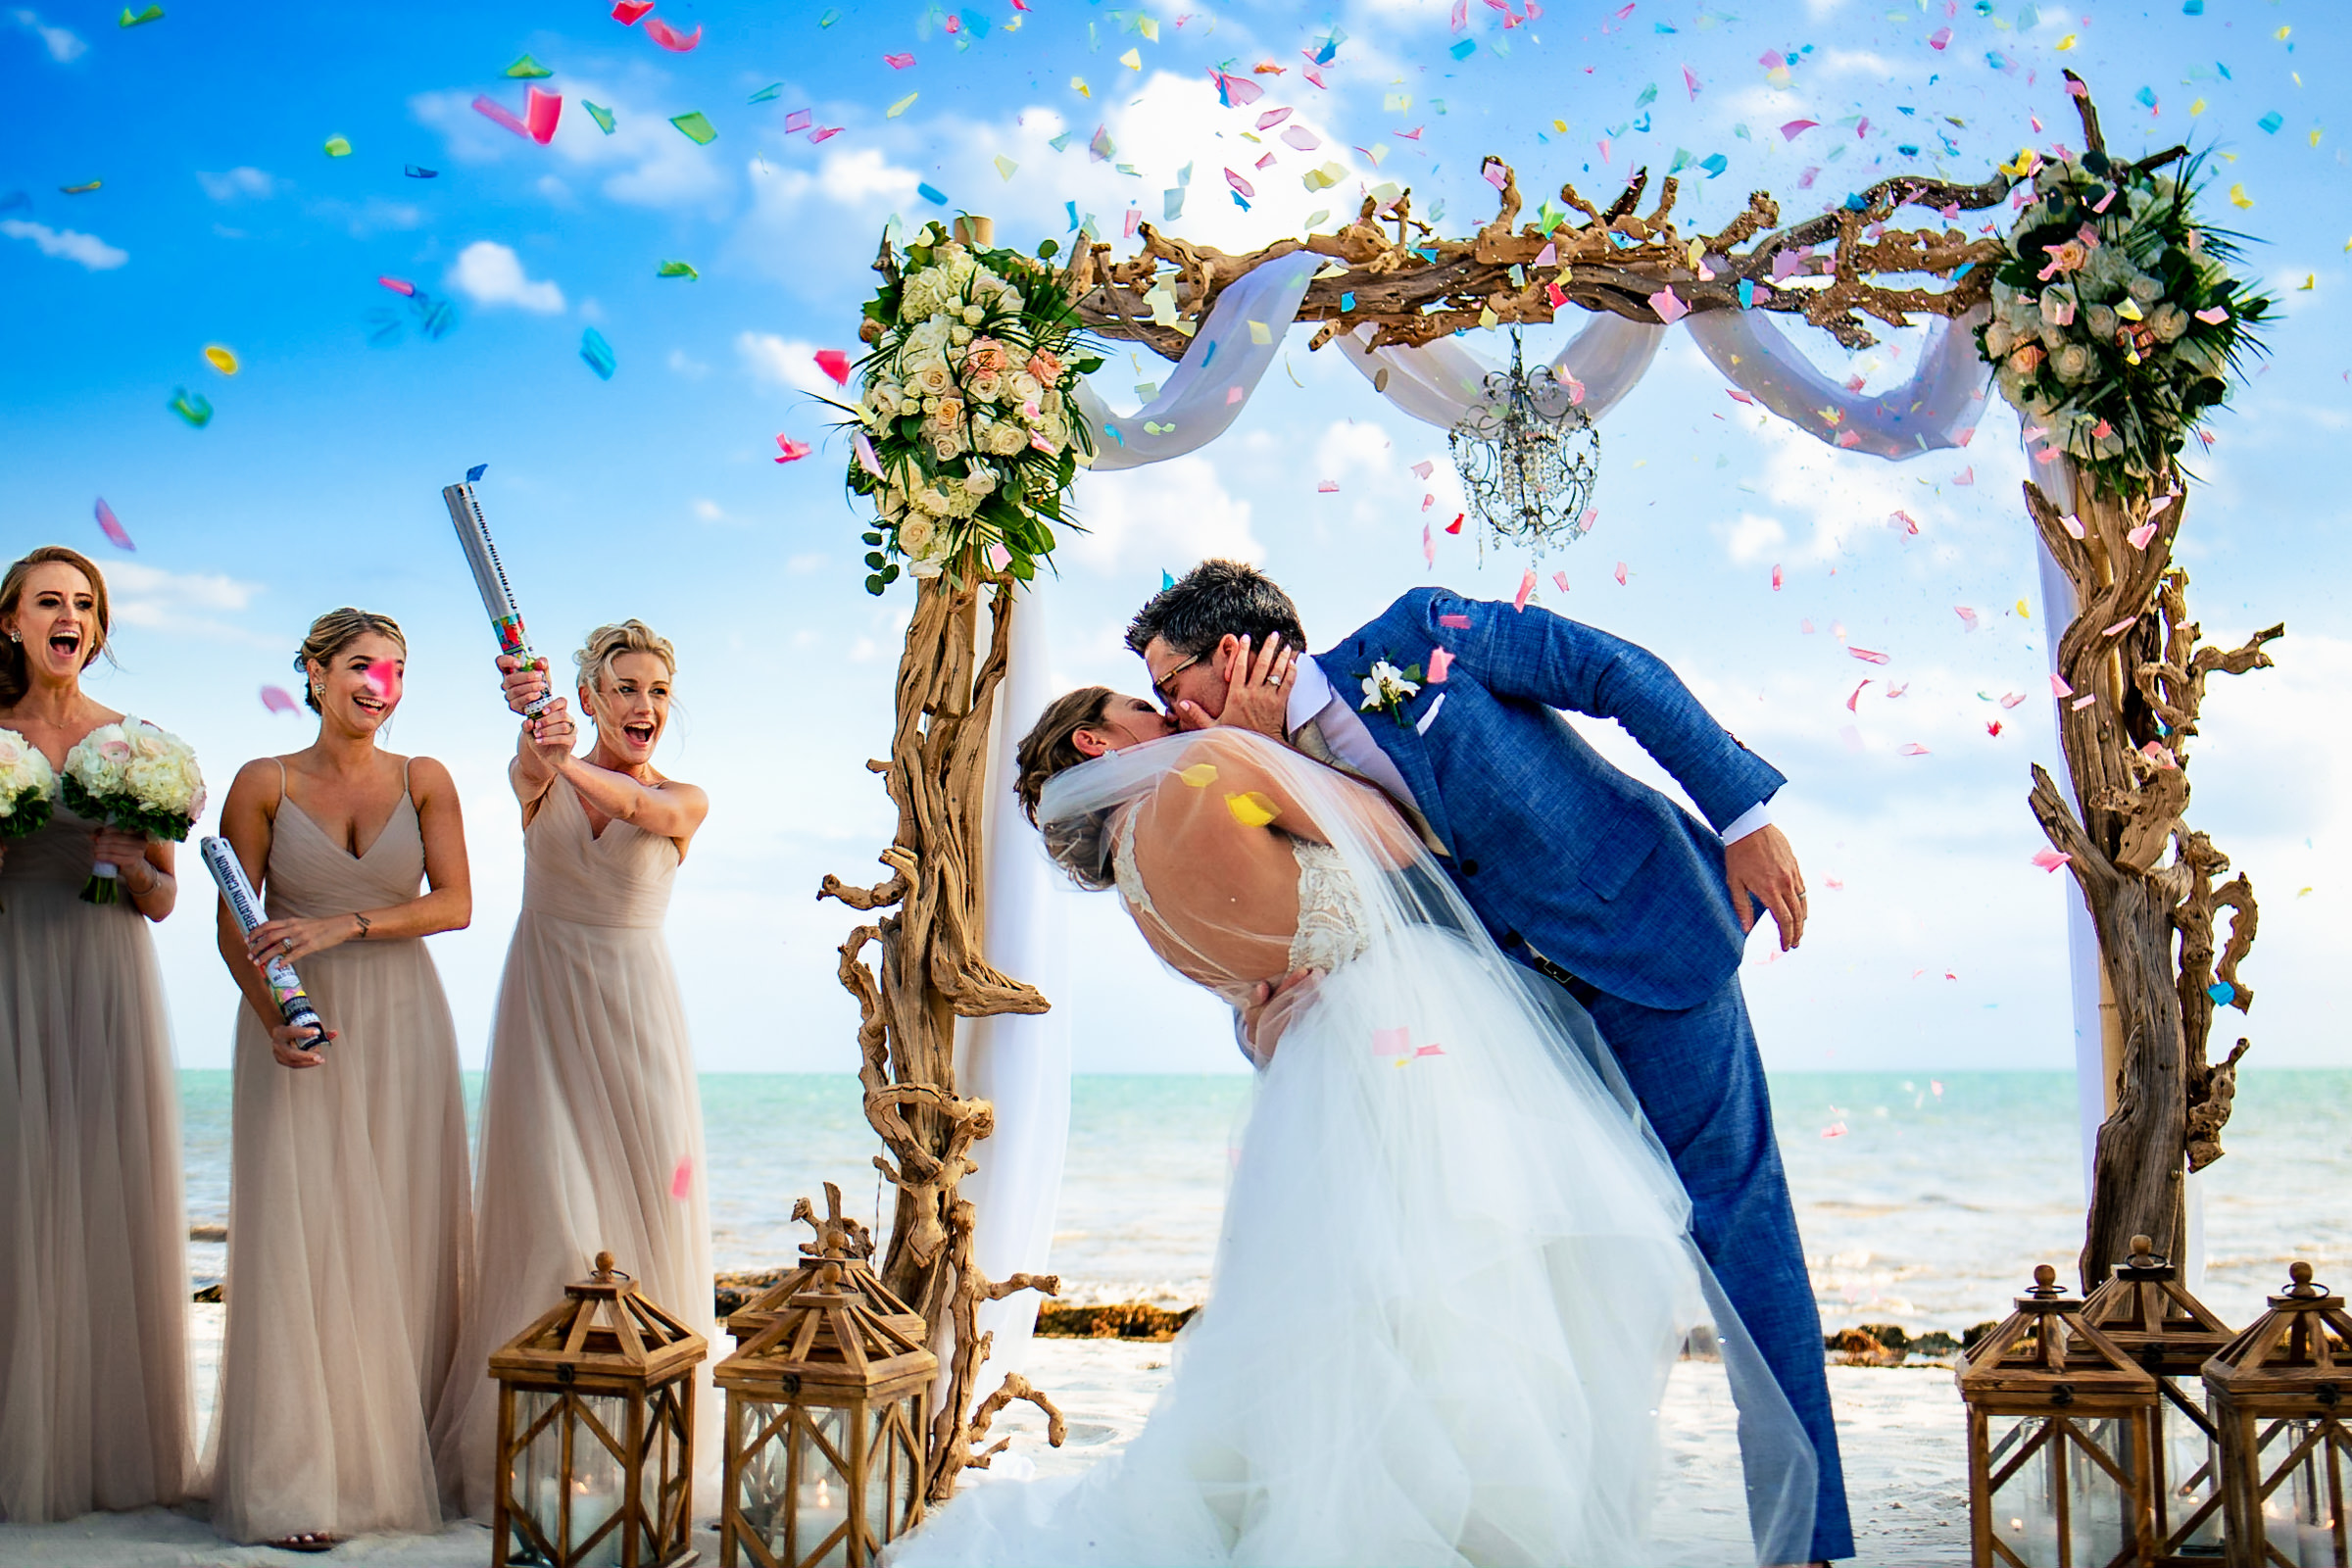 Bride and groom kiss against confetti and blue sky by Michael Freas - North Carolina